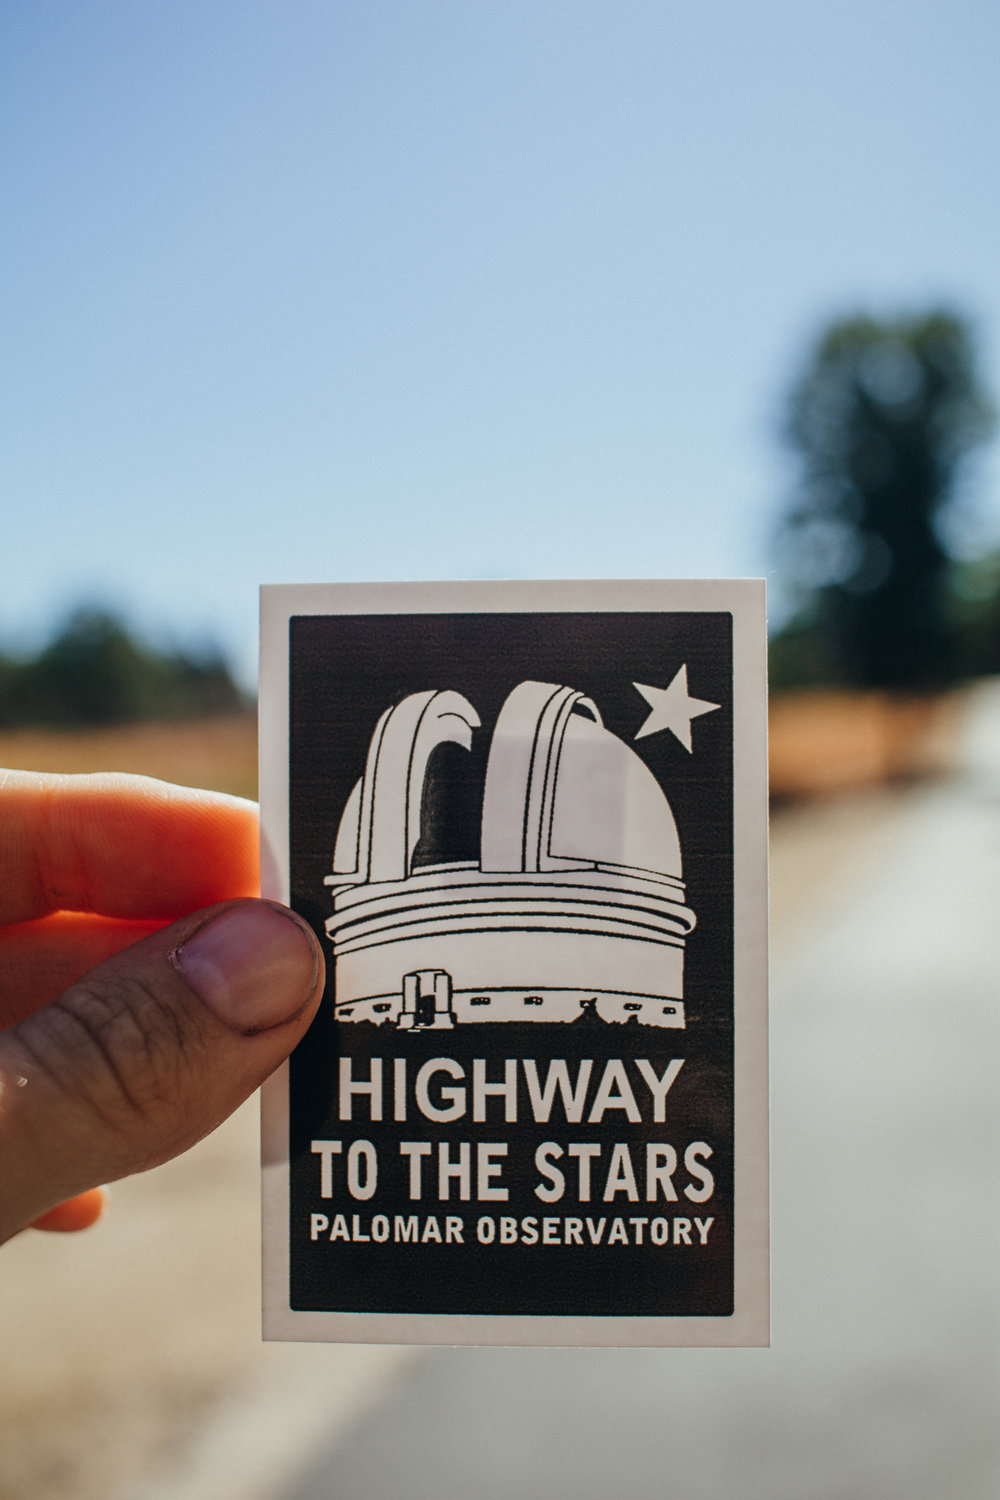 highway to the stars at mount palomar observatory